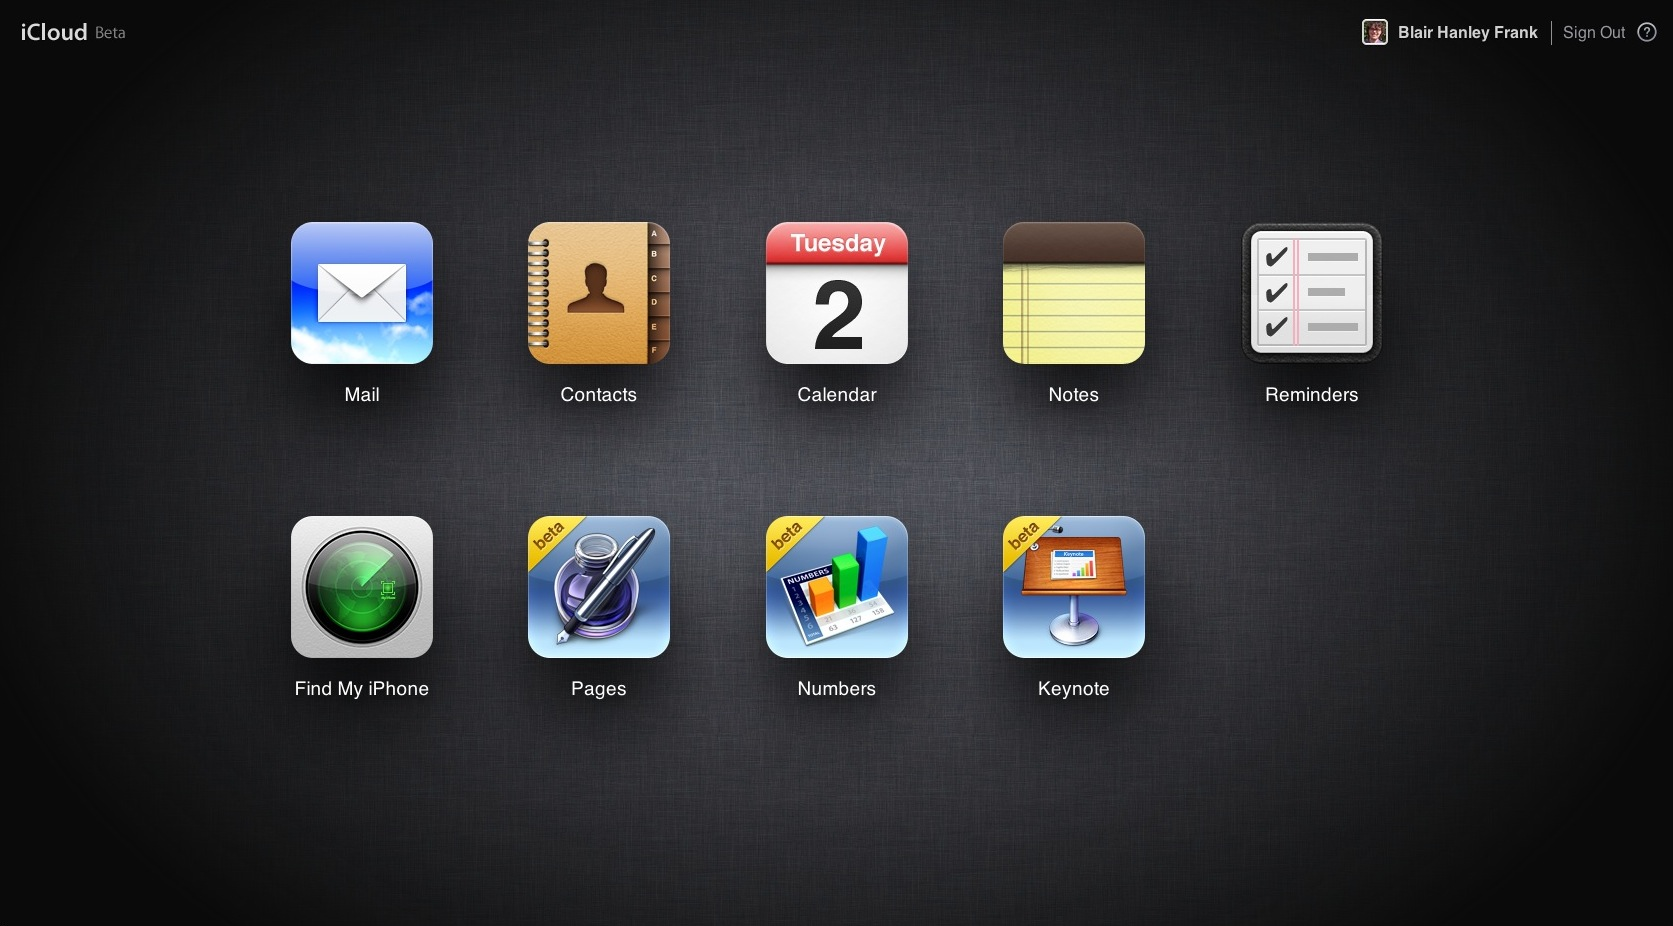 Apple opens up iWork for iCloud beta to everyone